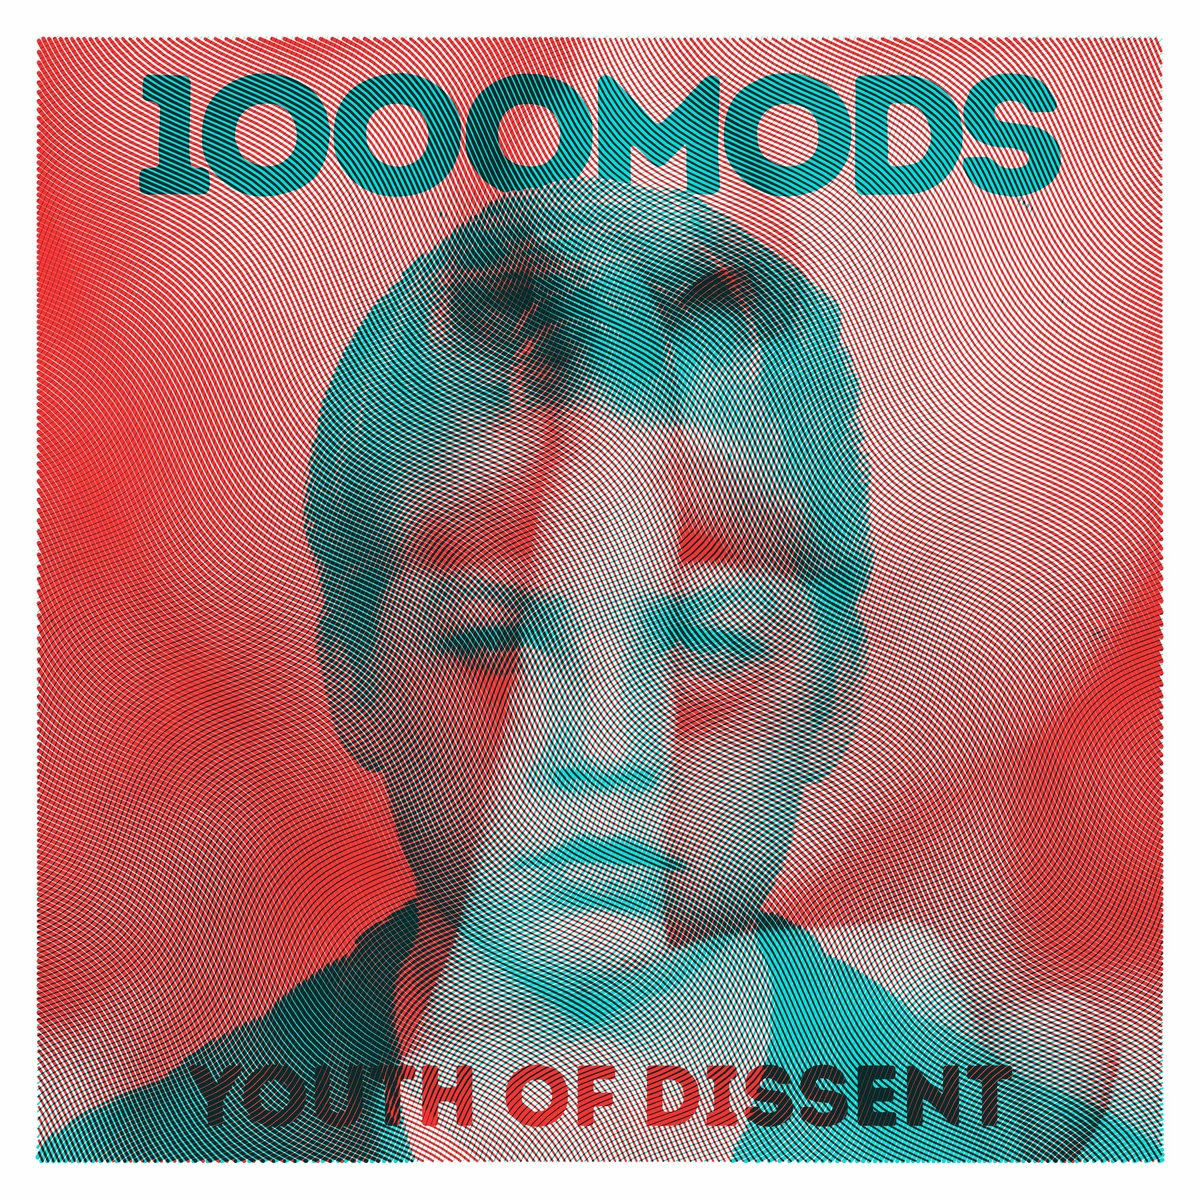 Youth Of Dissent 1000 Mods